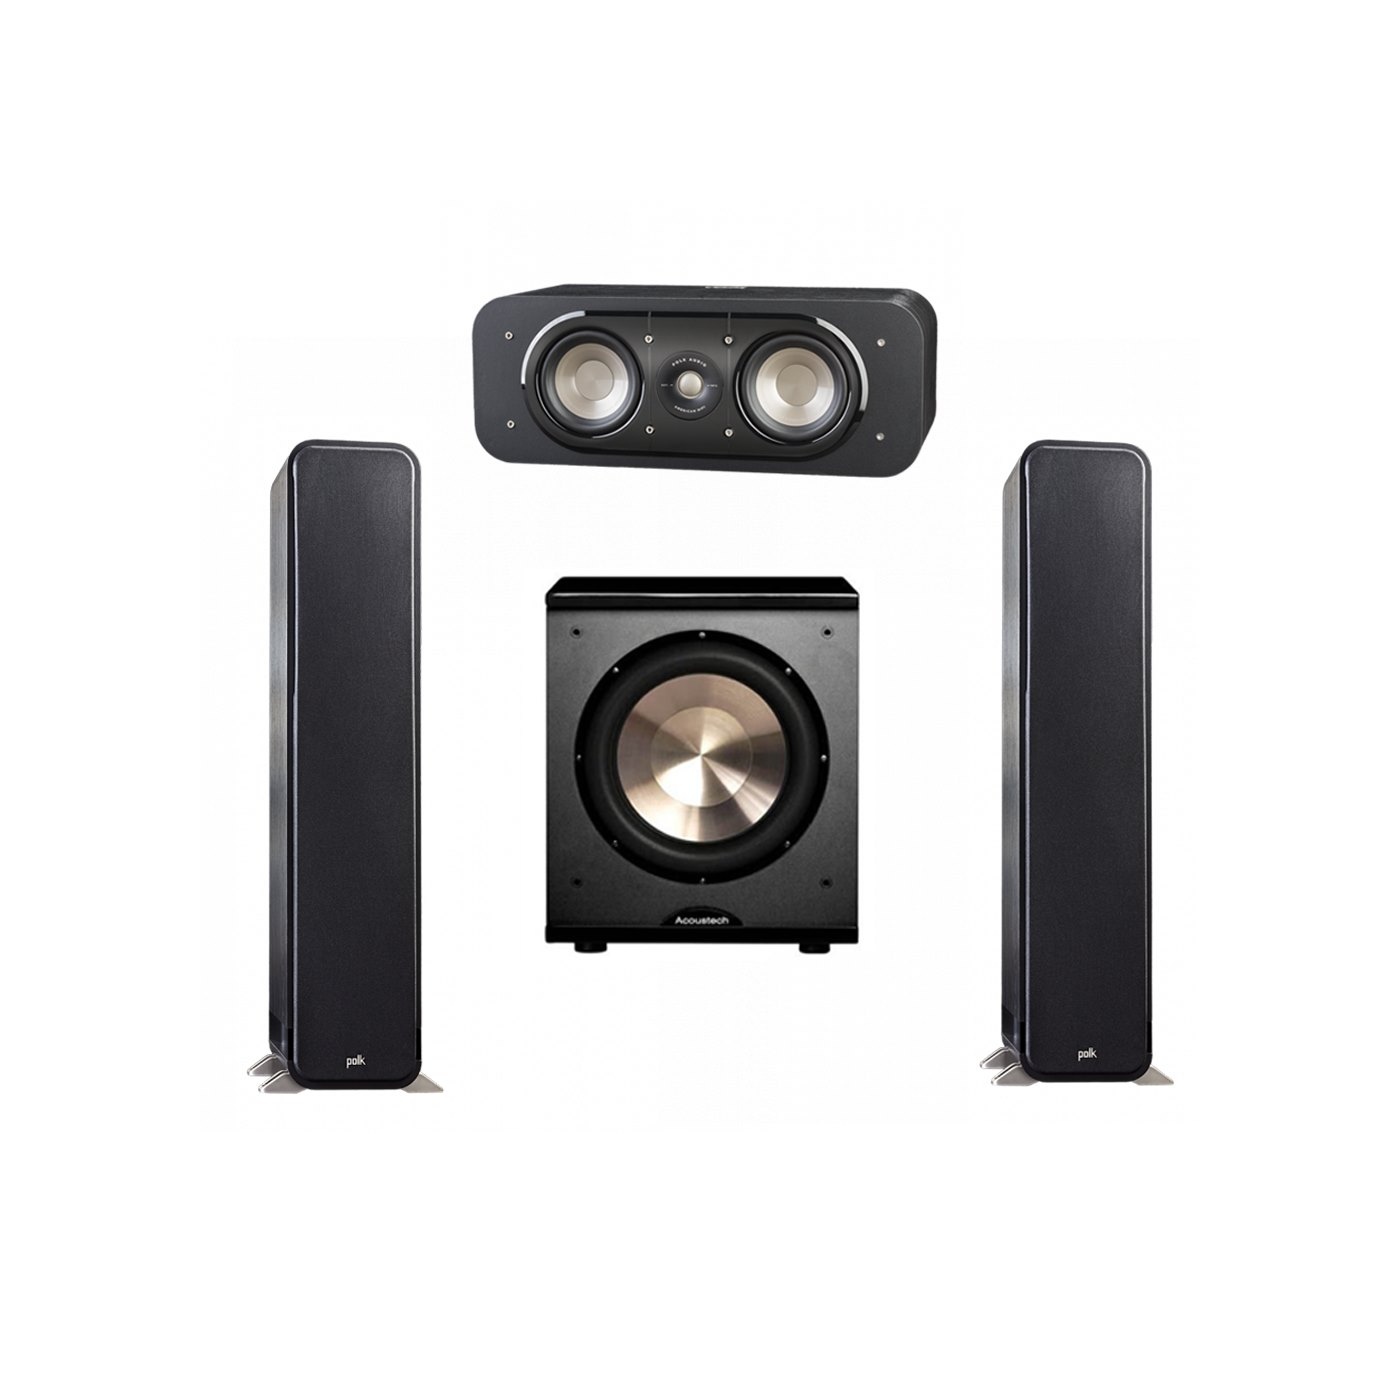 Polk Audio Signature 3.1 System with 2 S55 Tower Speaker, 1 Polk S30 Center Speaker, 1 BIC/Acoustech Platinum Series PL-200 Subwoofer